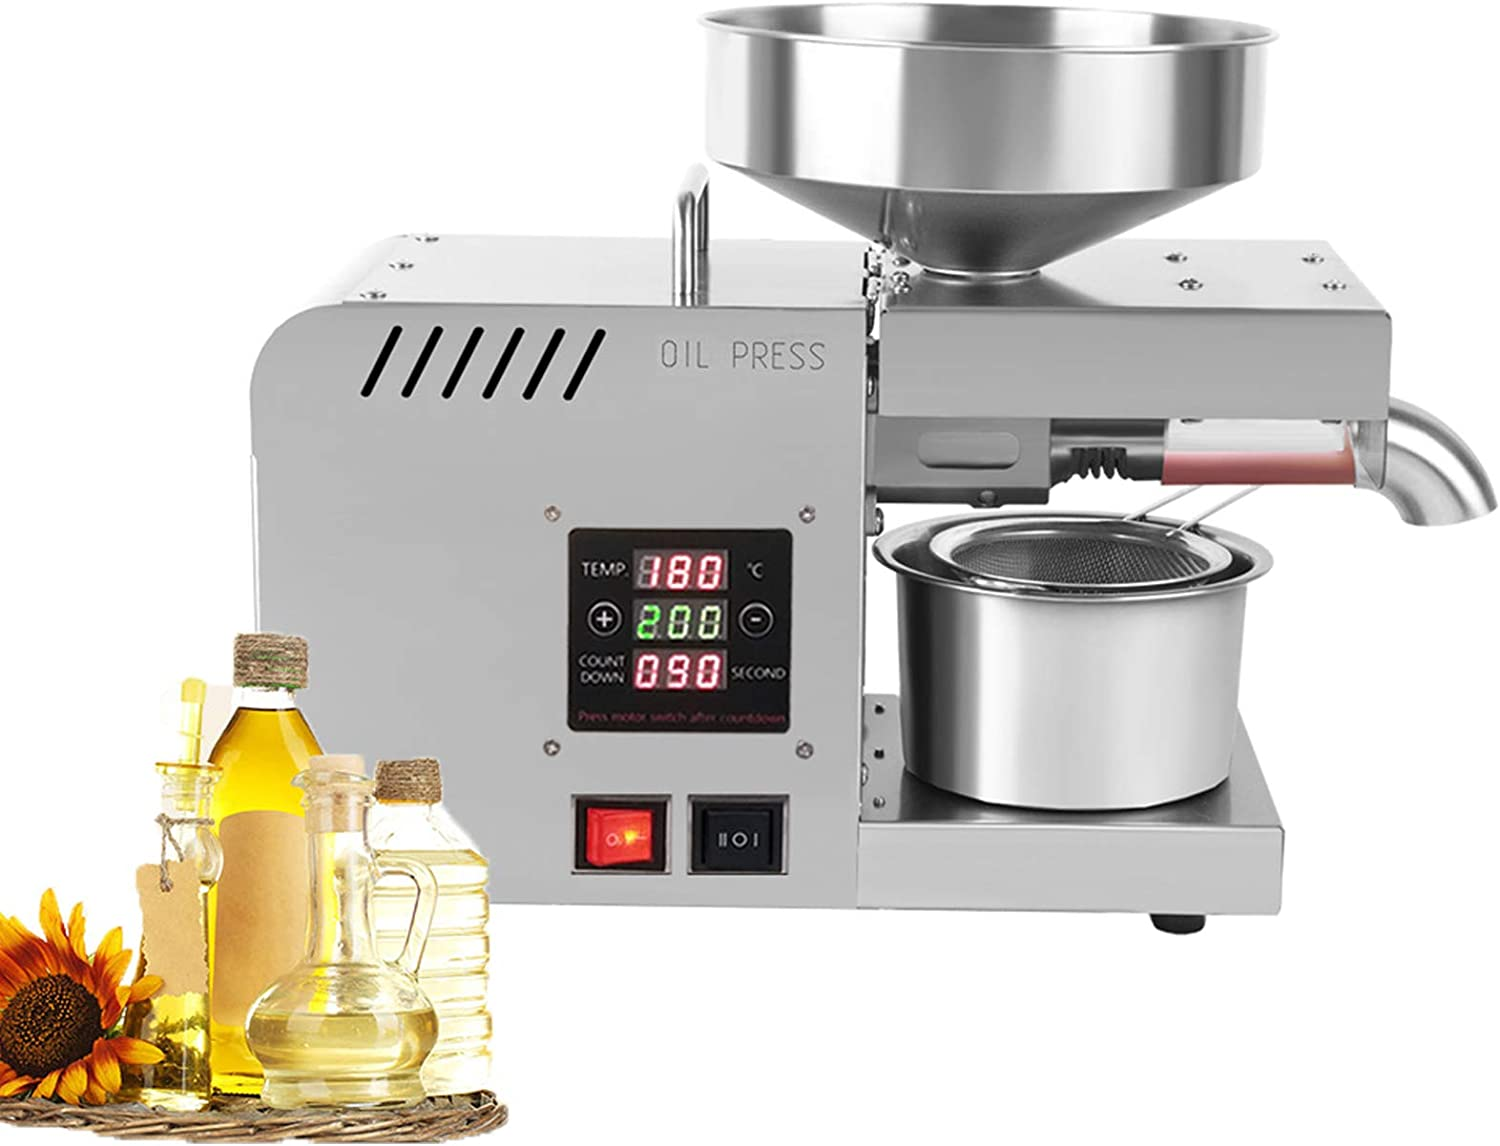 FREEDOH Oil Press Machine Multifunctional Temperature Control System Food Grade Stainless Steel Oil Presser for Peanut Pecans Flax Seeds Almonds Canola